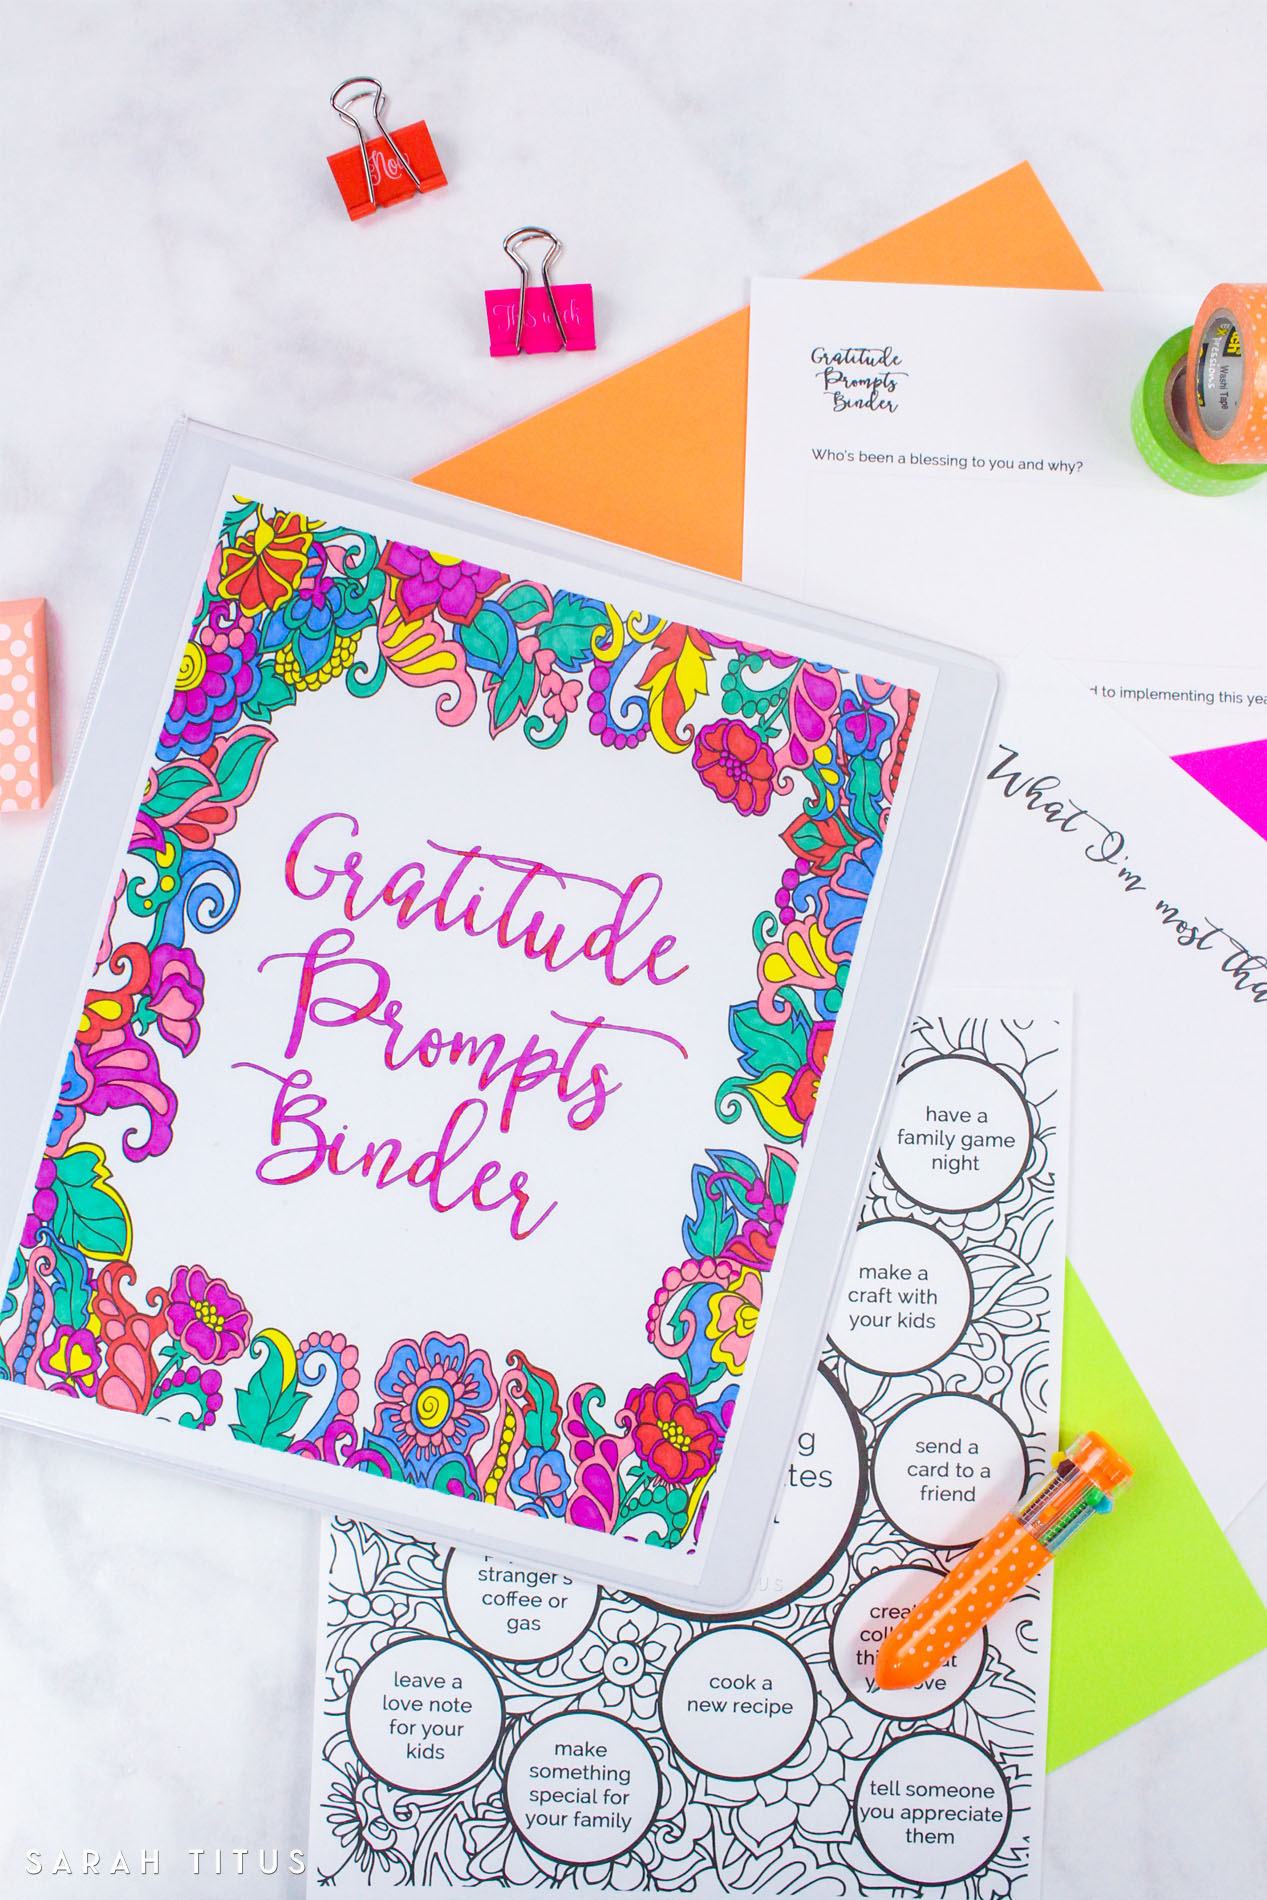 This 16-page coloring gratitude prompts binder is a fun way to help you relax, coloring and melting your stress away, all the while, asking you questions that dig deeper and help you find more meaning and thankfulness in and for your life. #gratitudeprompts #gratitudepromptsbinder